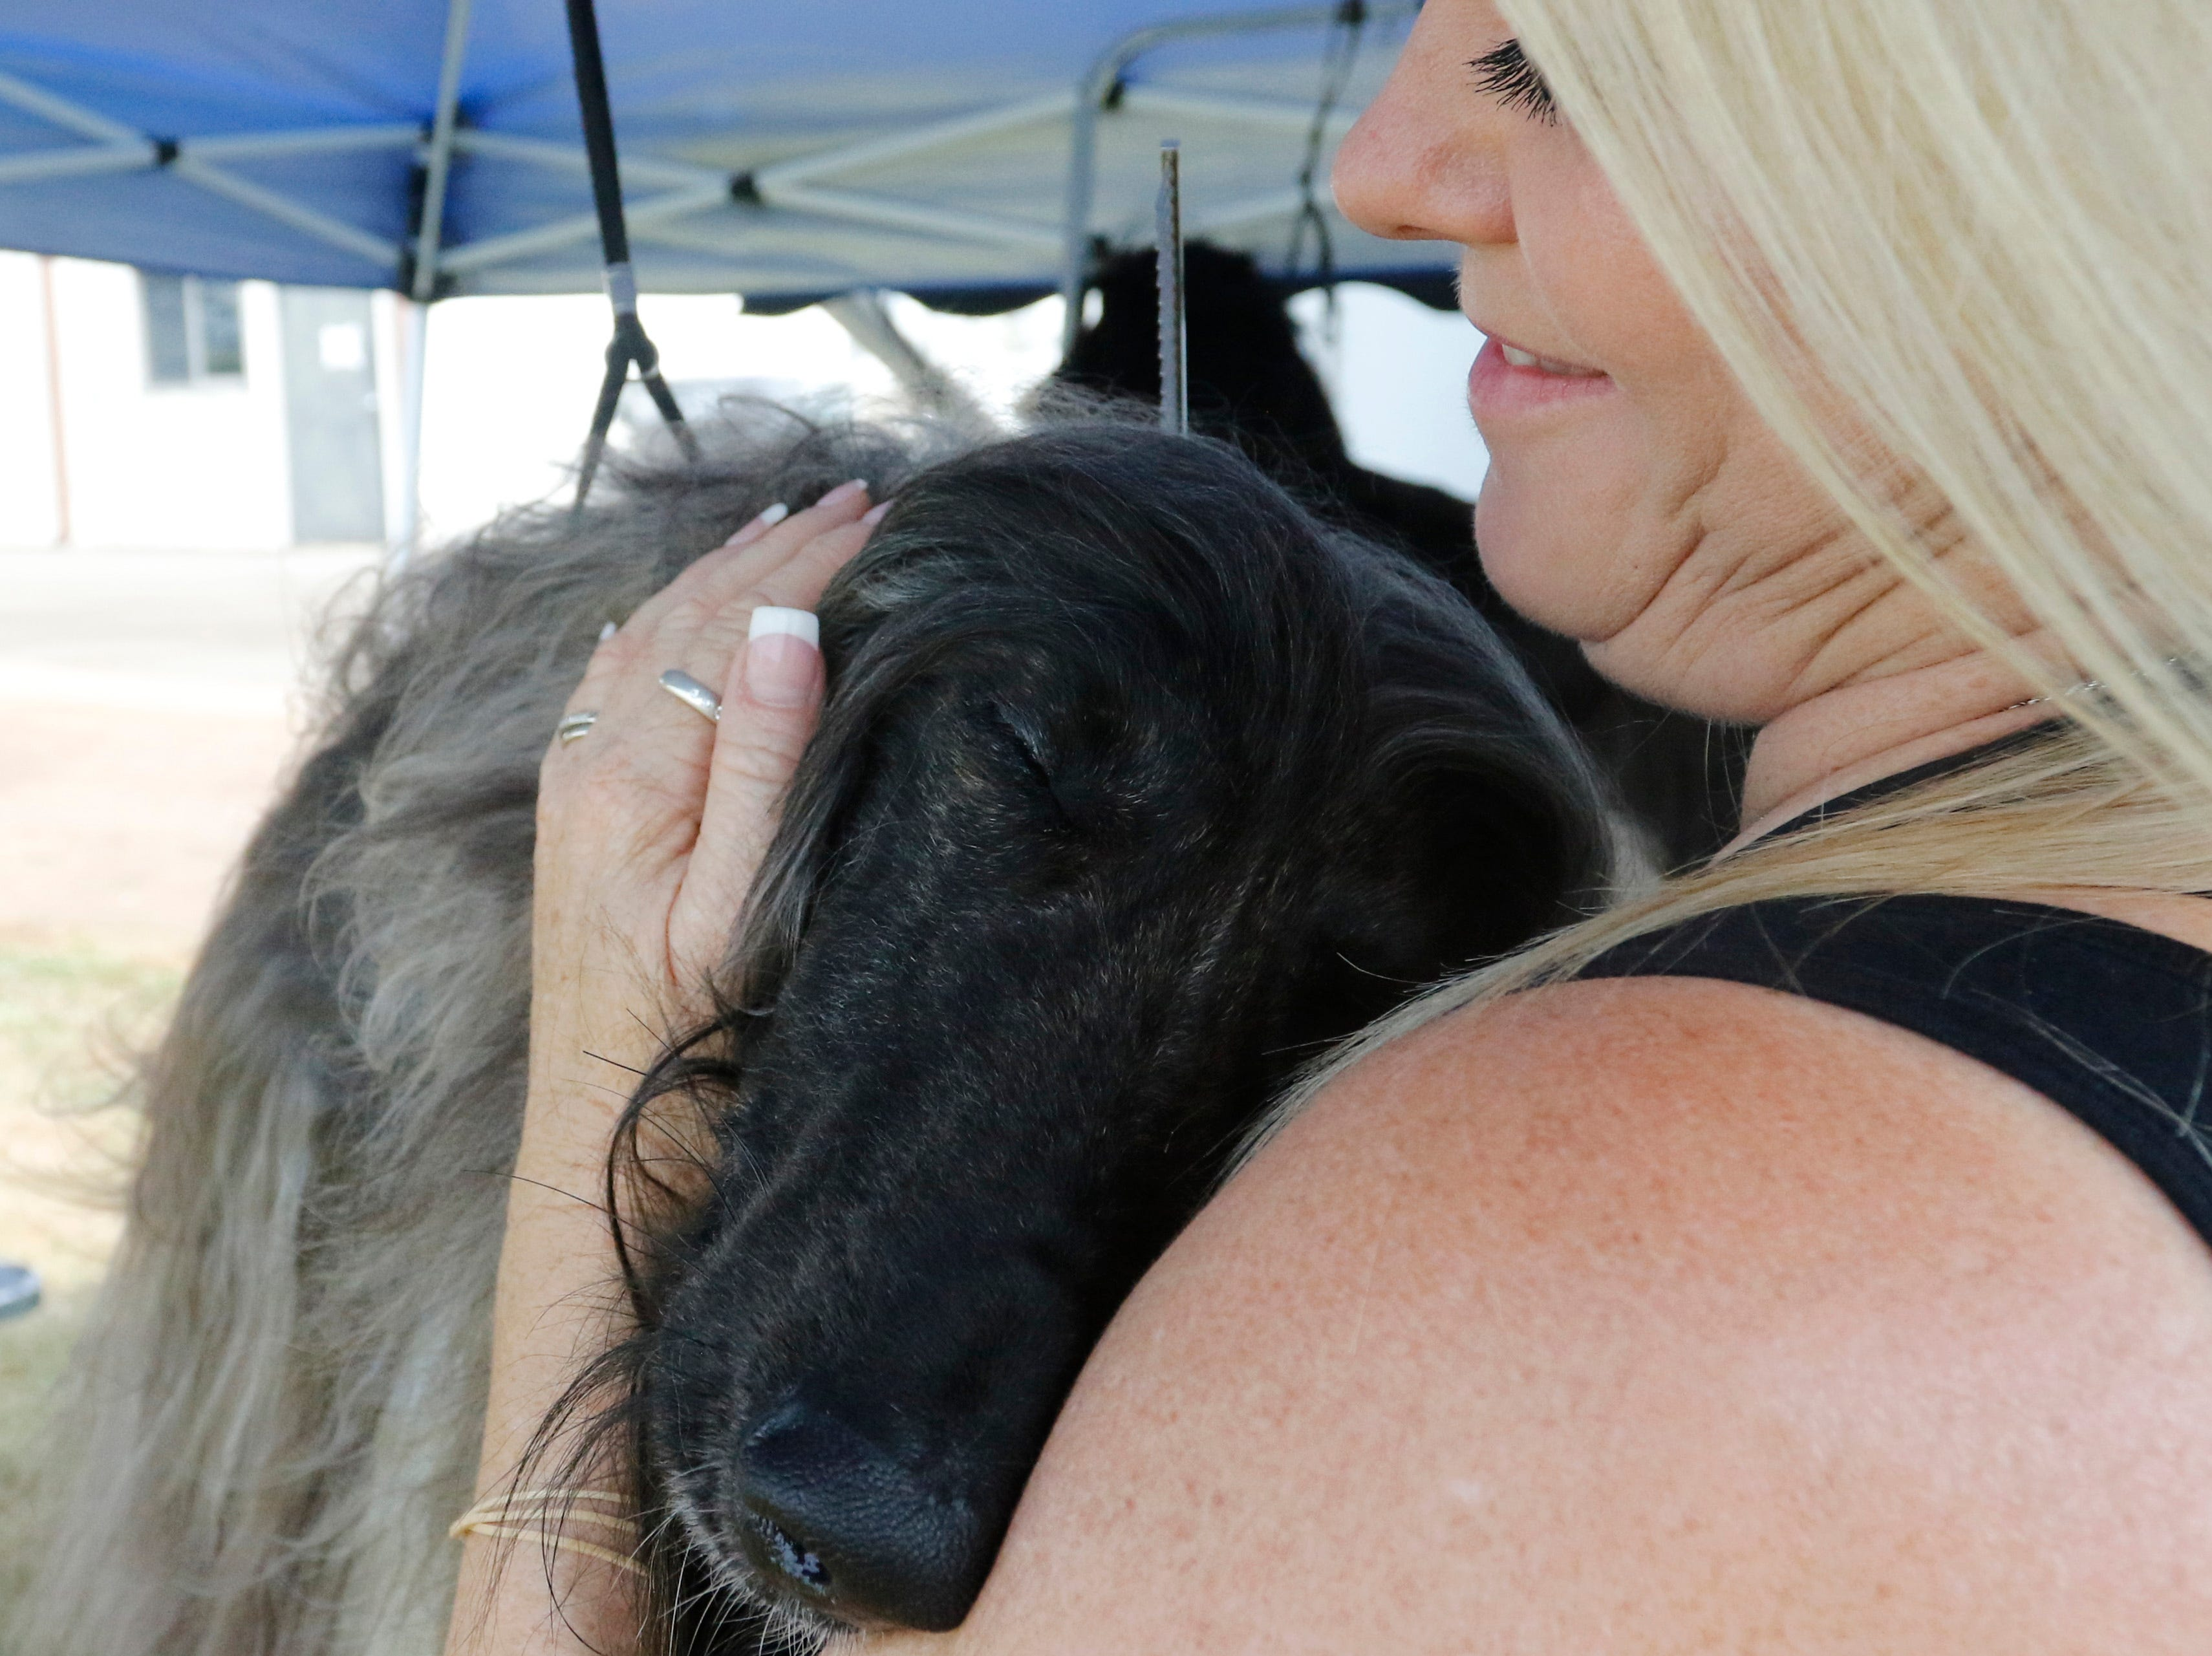 Indy, an Afghan hound, gets a hug from his handler Tabitha Bettis as she grooms him before competing during the Marshfield Area Kennel Club's All-Breed Dog Show, Obedience Trials and Rally Trials at the Central Wisconsin Fairgrounds in Marshfield Saturday, August 18, 2018.